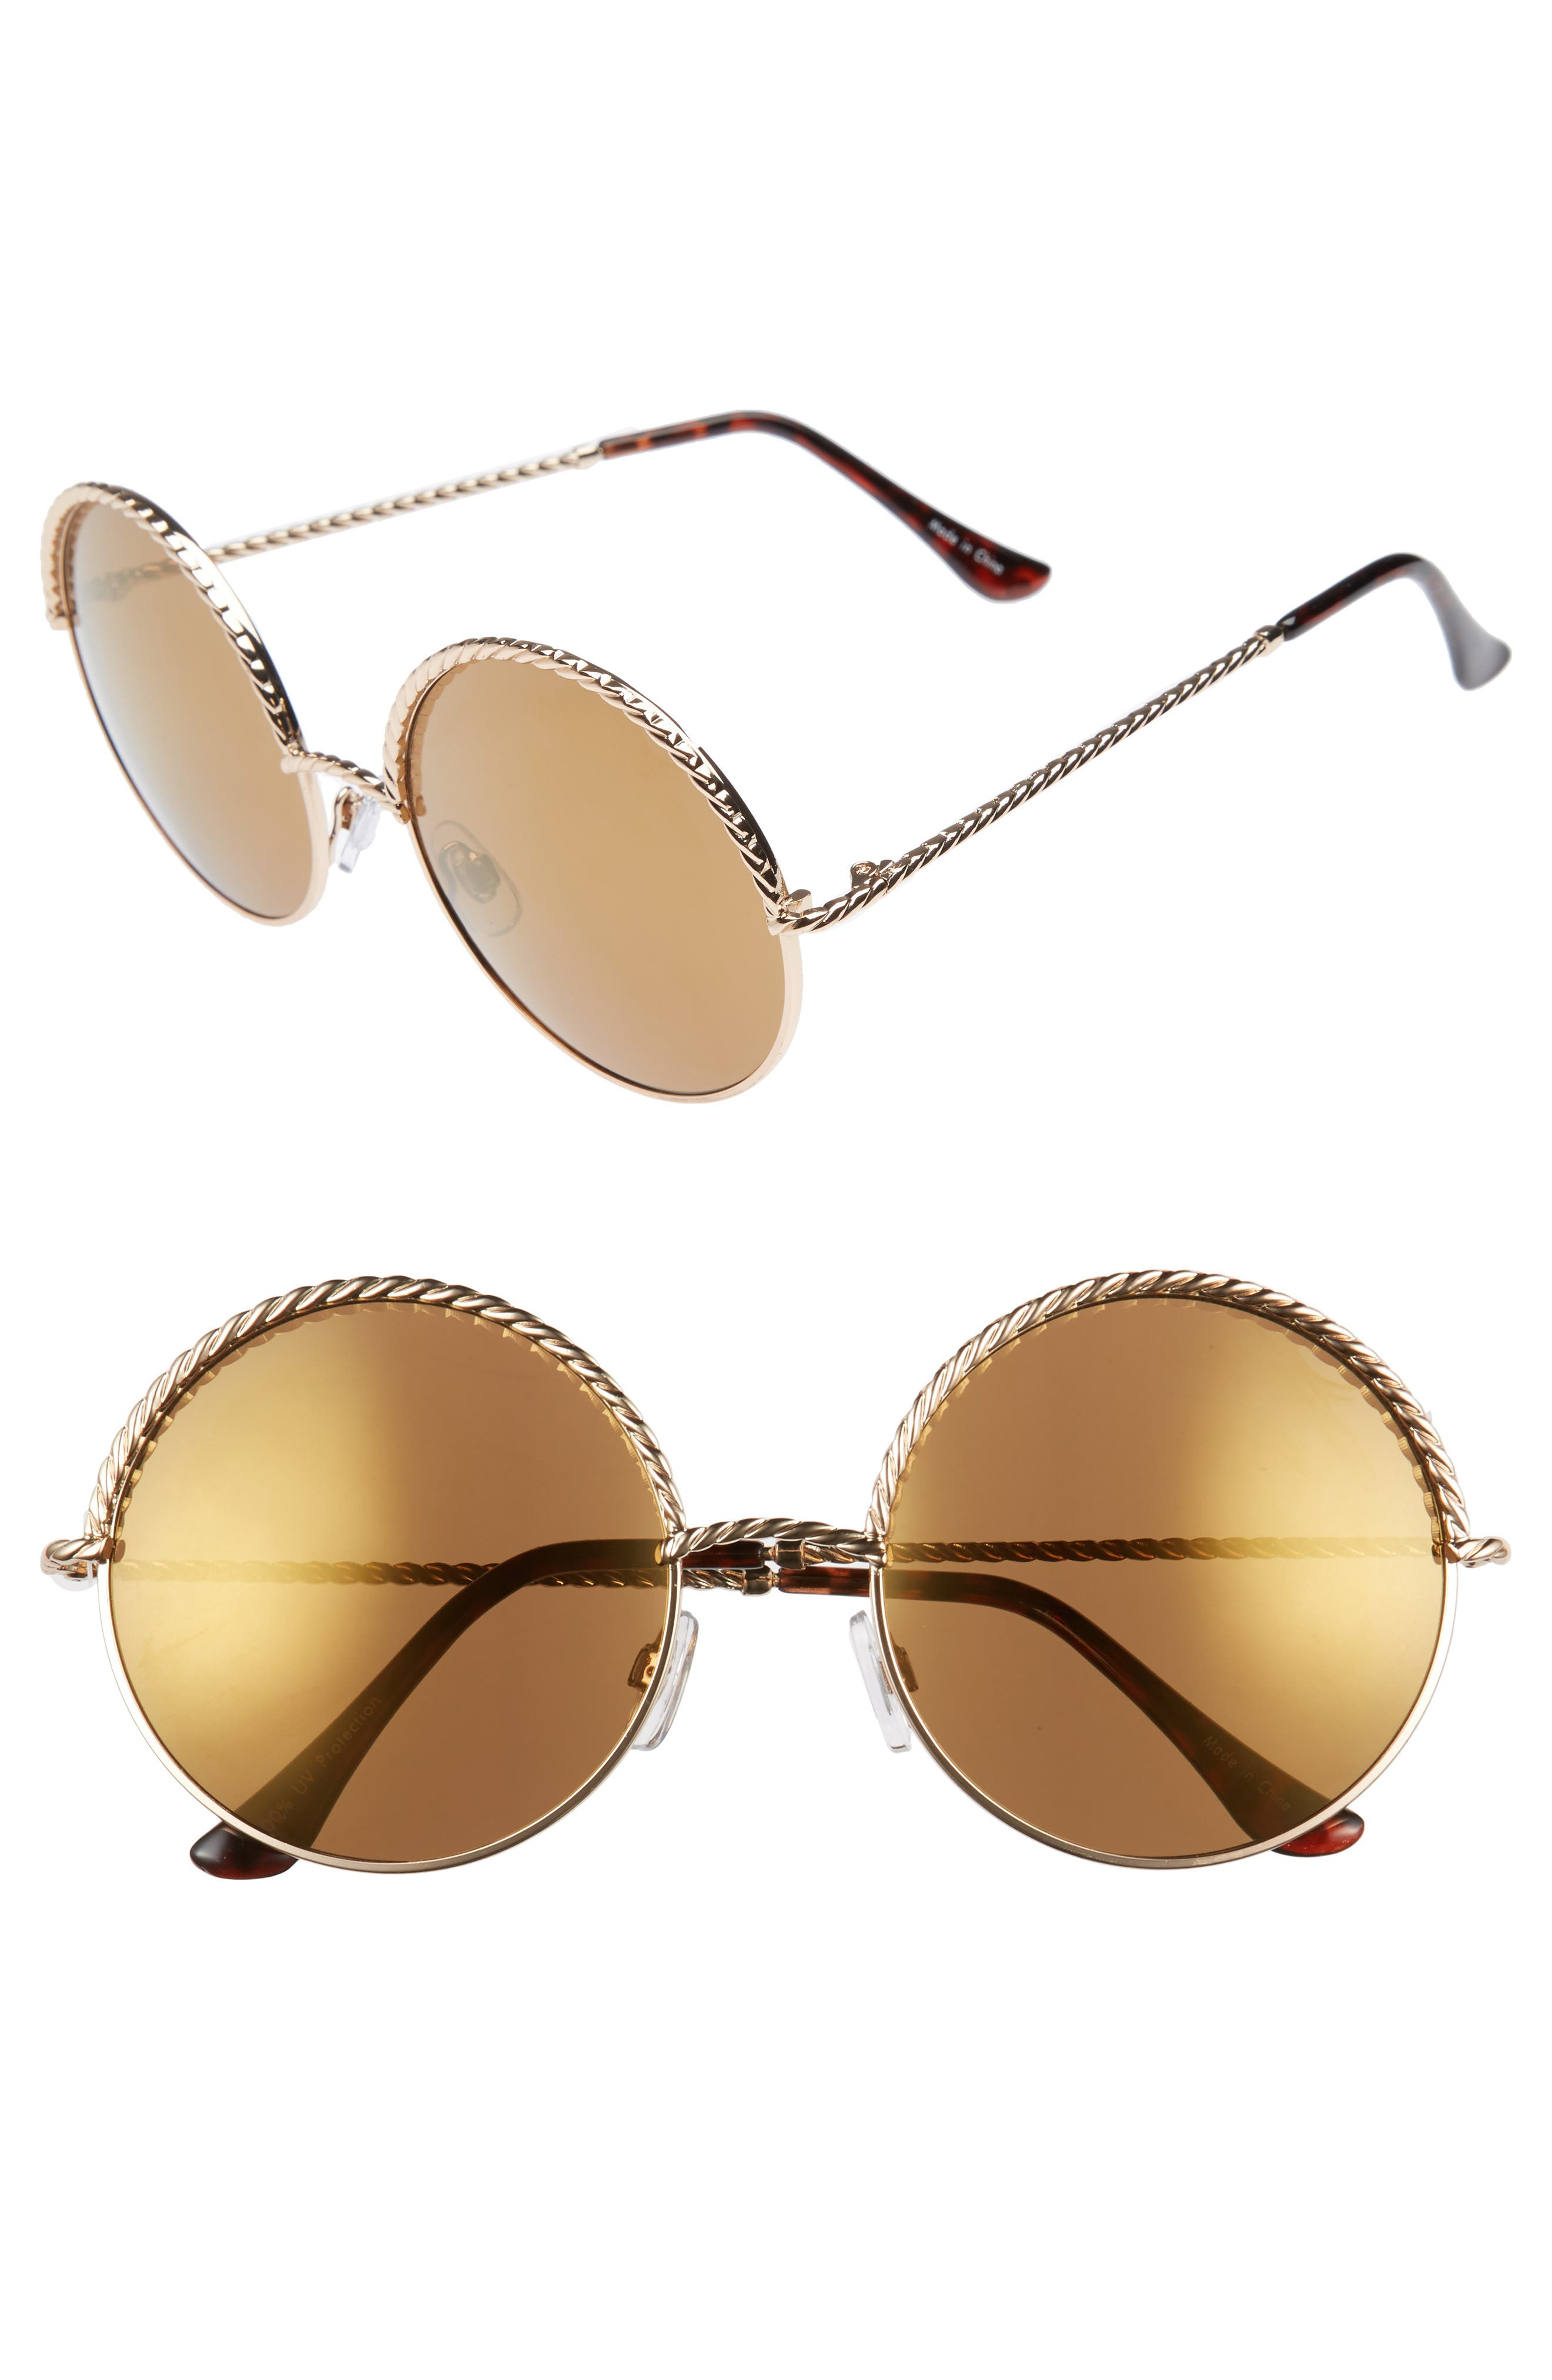 Alternate Image 1 Selected - BP. 58mm Chain Trim Round Sunglasses